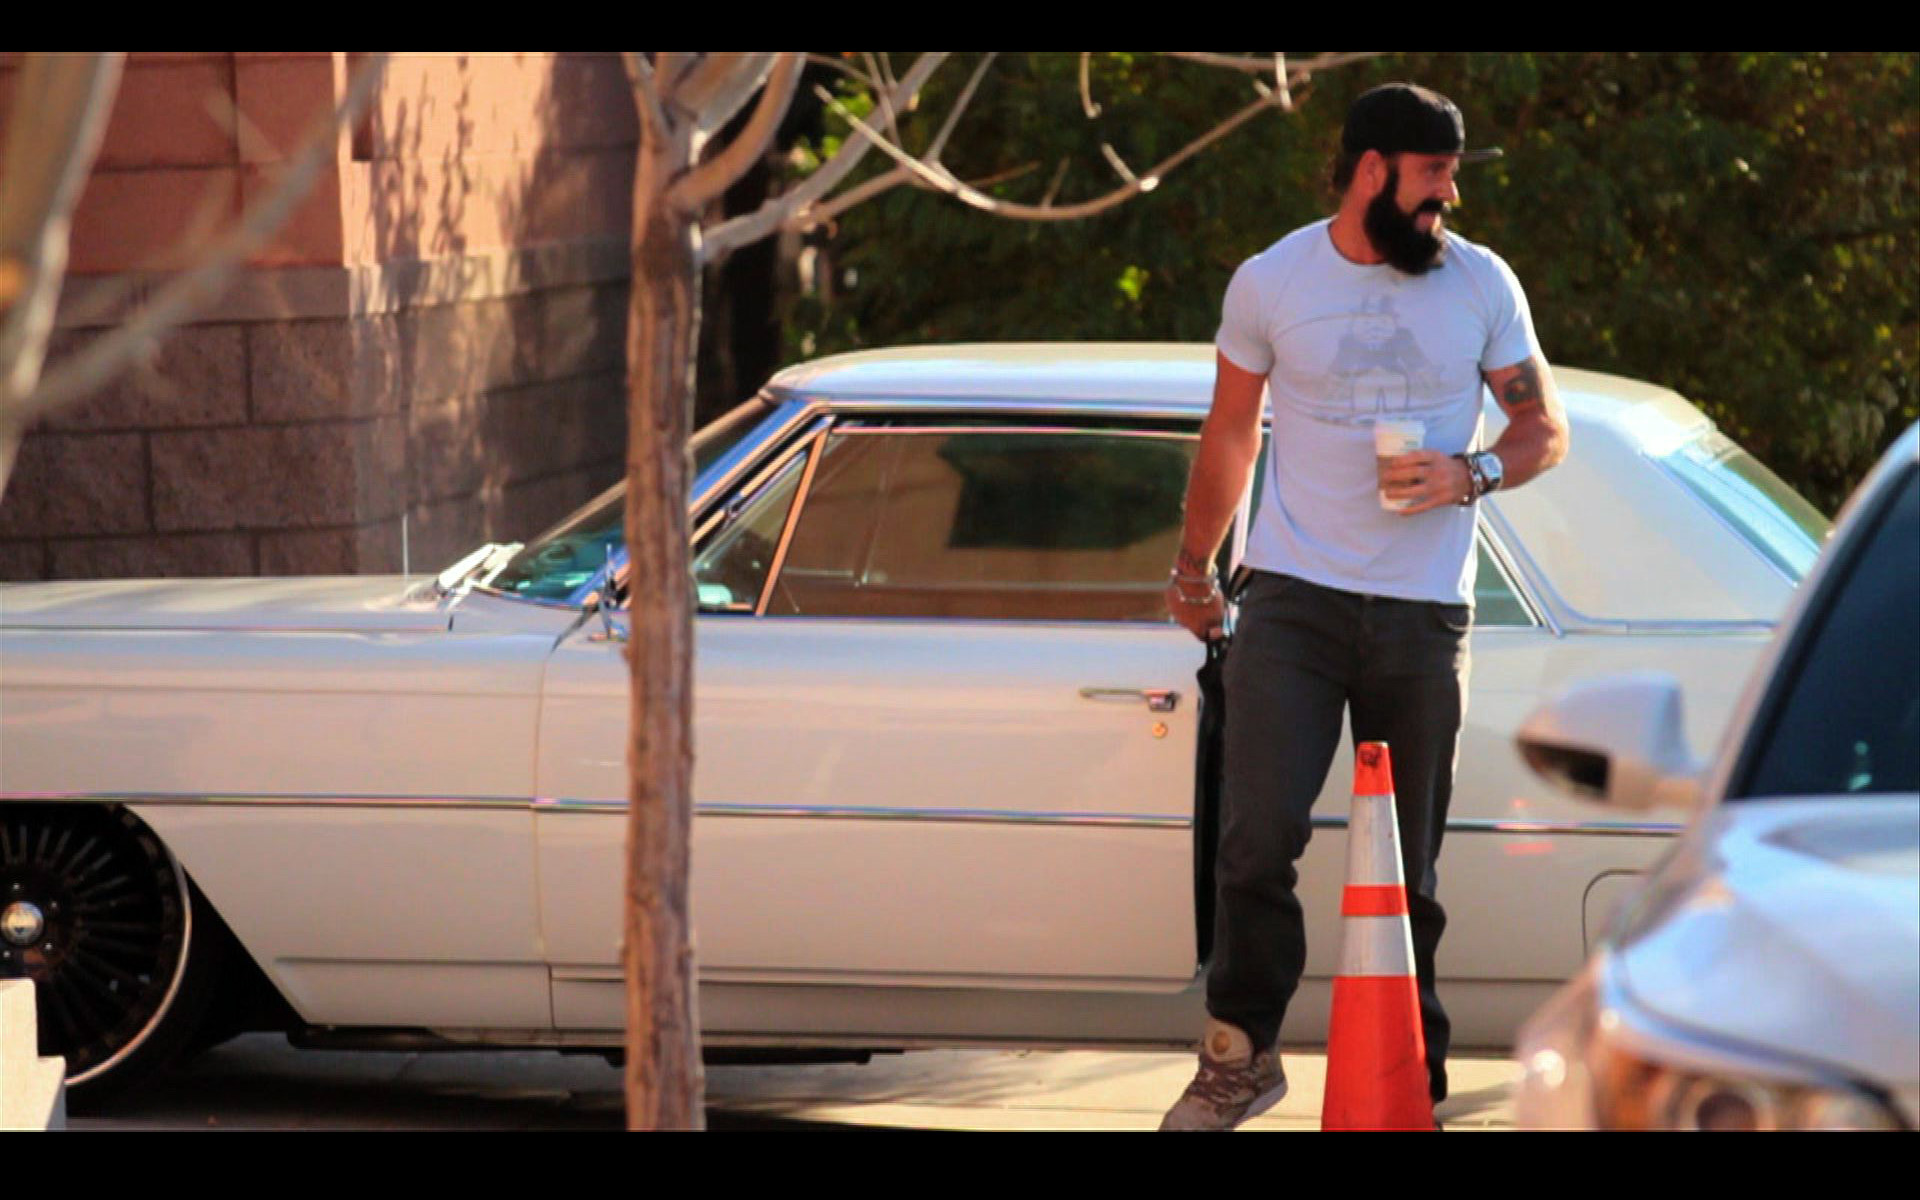 SFGiants and Brian Wilson – Sunglasses Always Fit 94476bd80